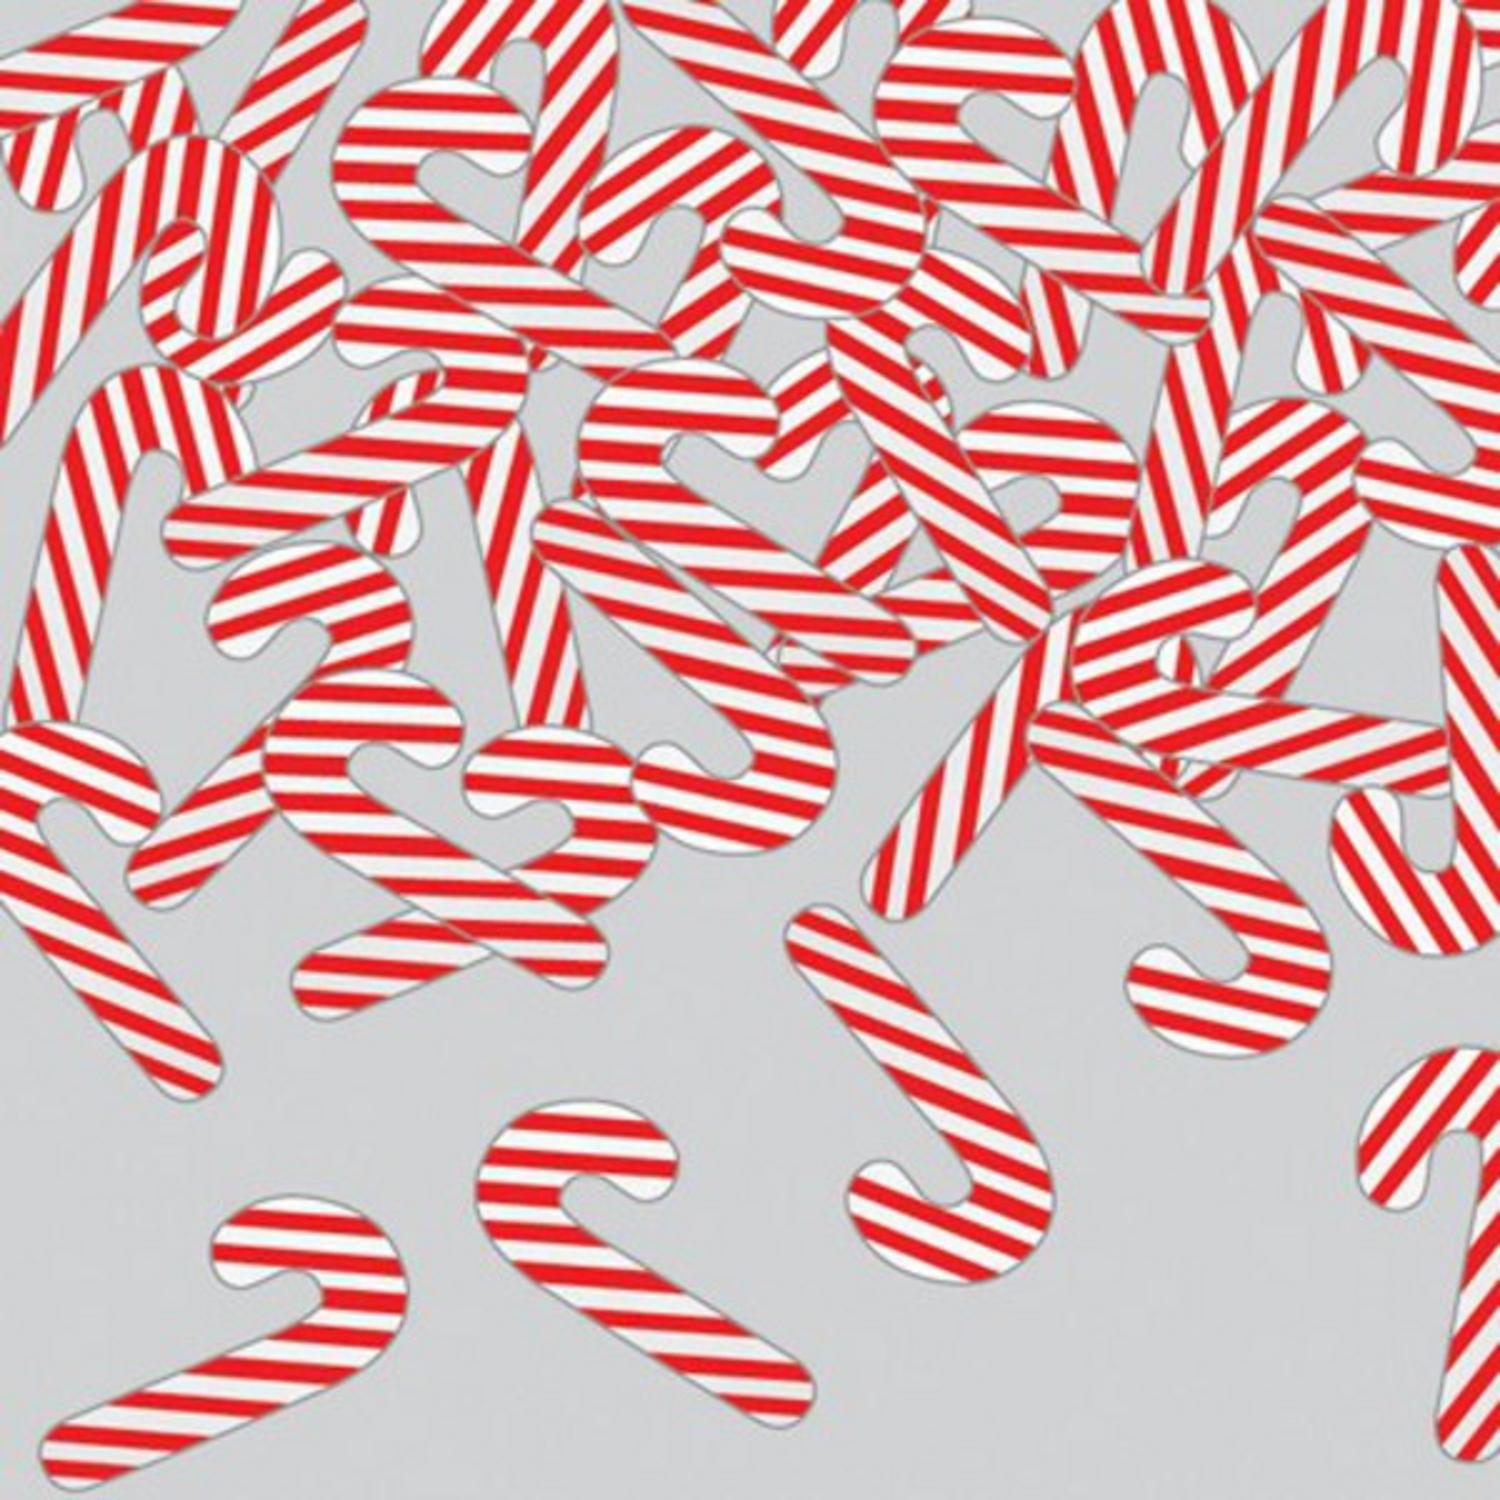 Club Pack of 12 Metallic Red & White Candy Cane Christmas Celebration Confetti Bags 0.5 oz.